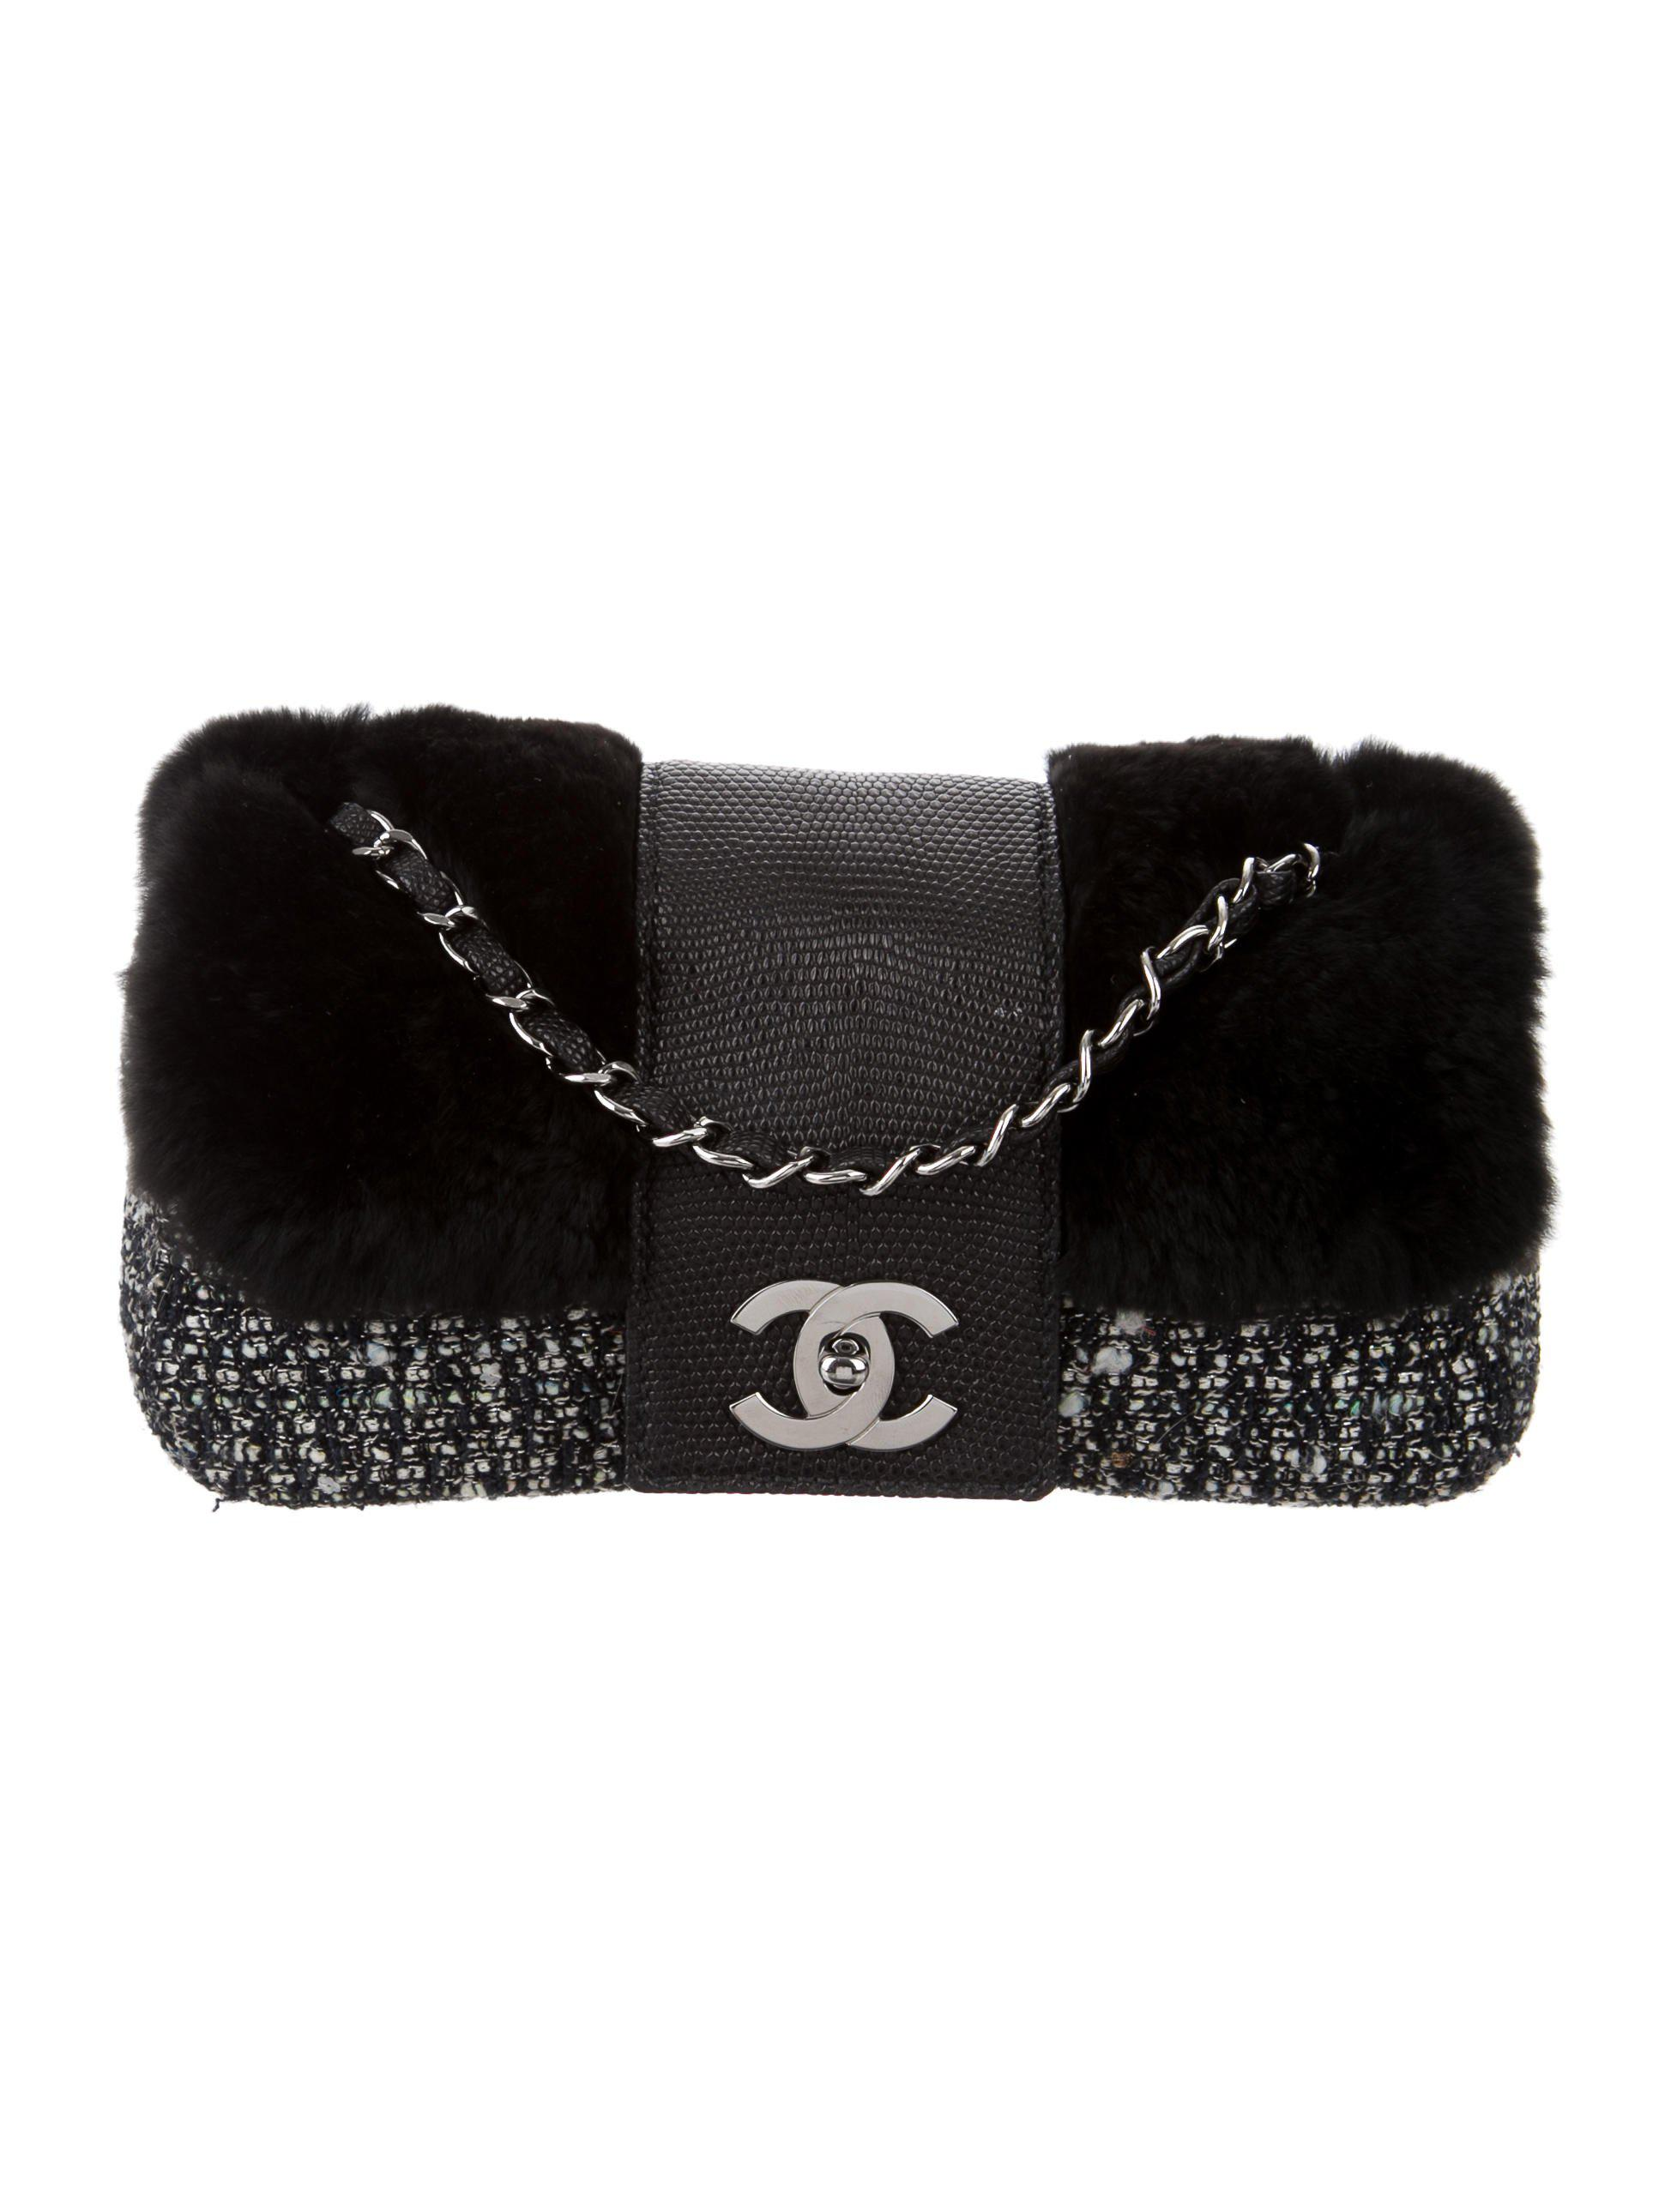 064b452fbdc0 Lyst - Chanel Fantasy Tweed Fur Flap Bag in Black